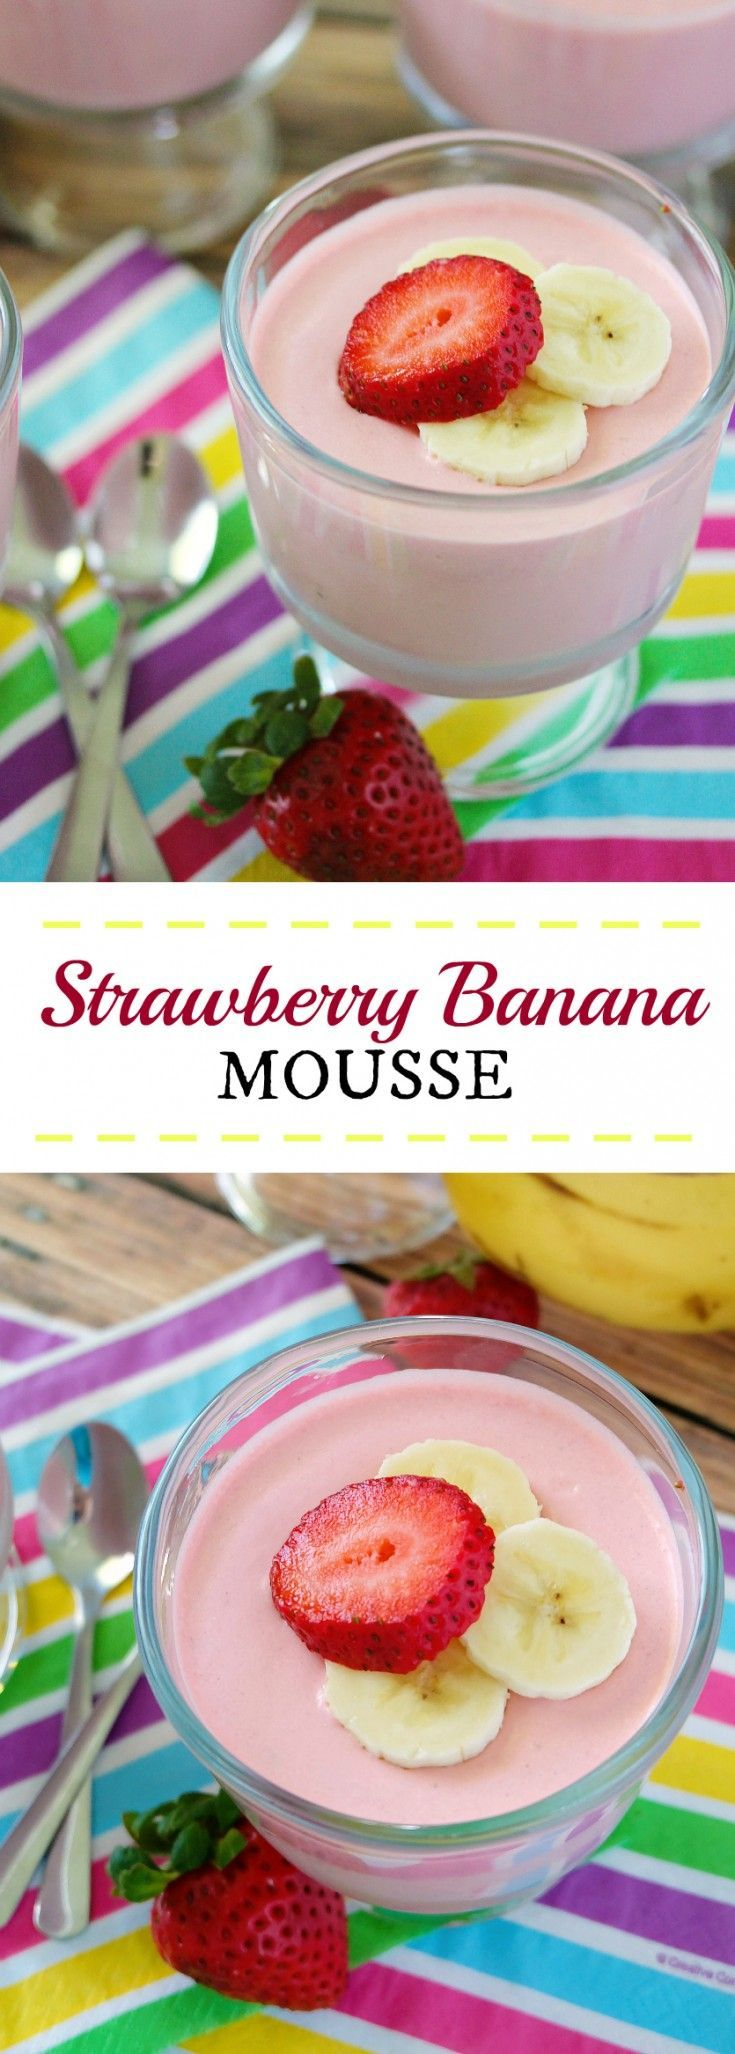 Strawberry Banana Mousse is a simple and easy recipe using jello, whipped topping and fruit. Creamy and smooth, and so entirely perfect for summertime!